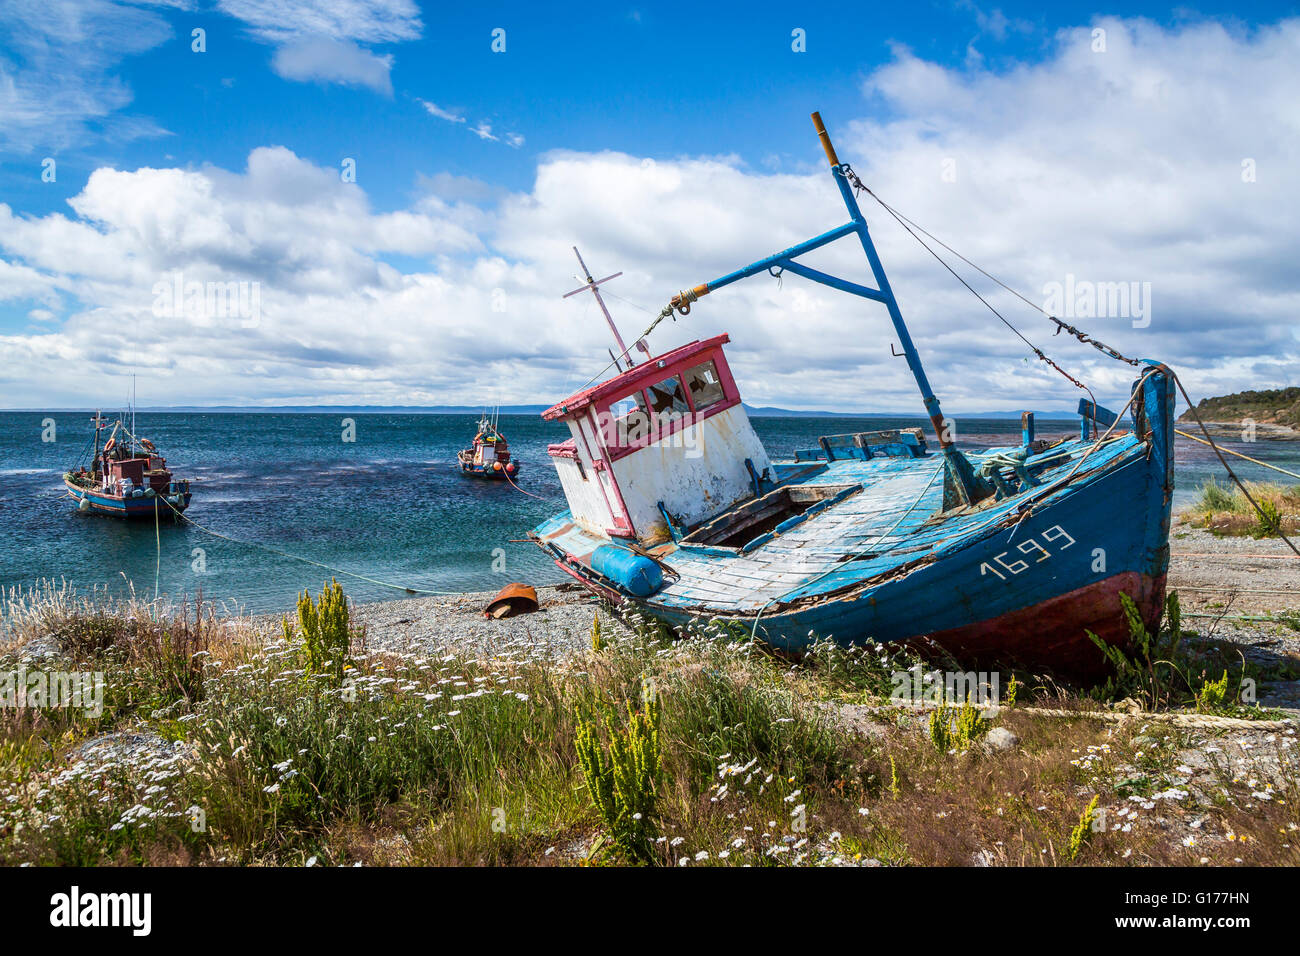 An old fishing boat on the shores of the strait of for Old fishing boat